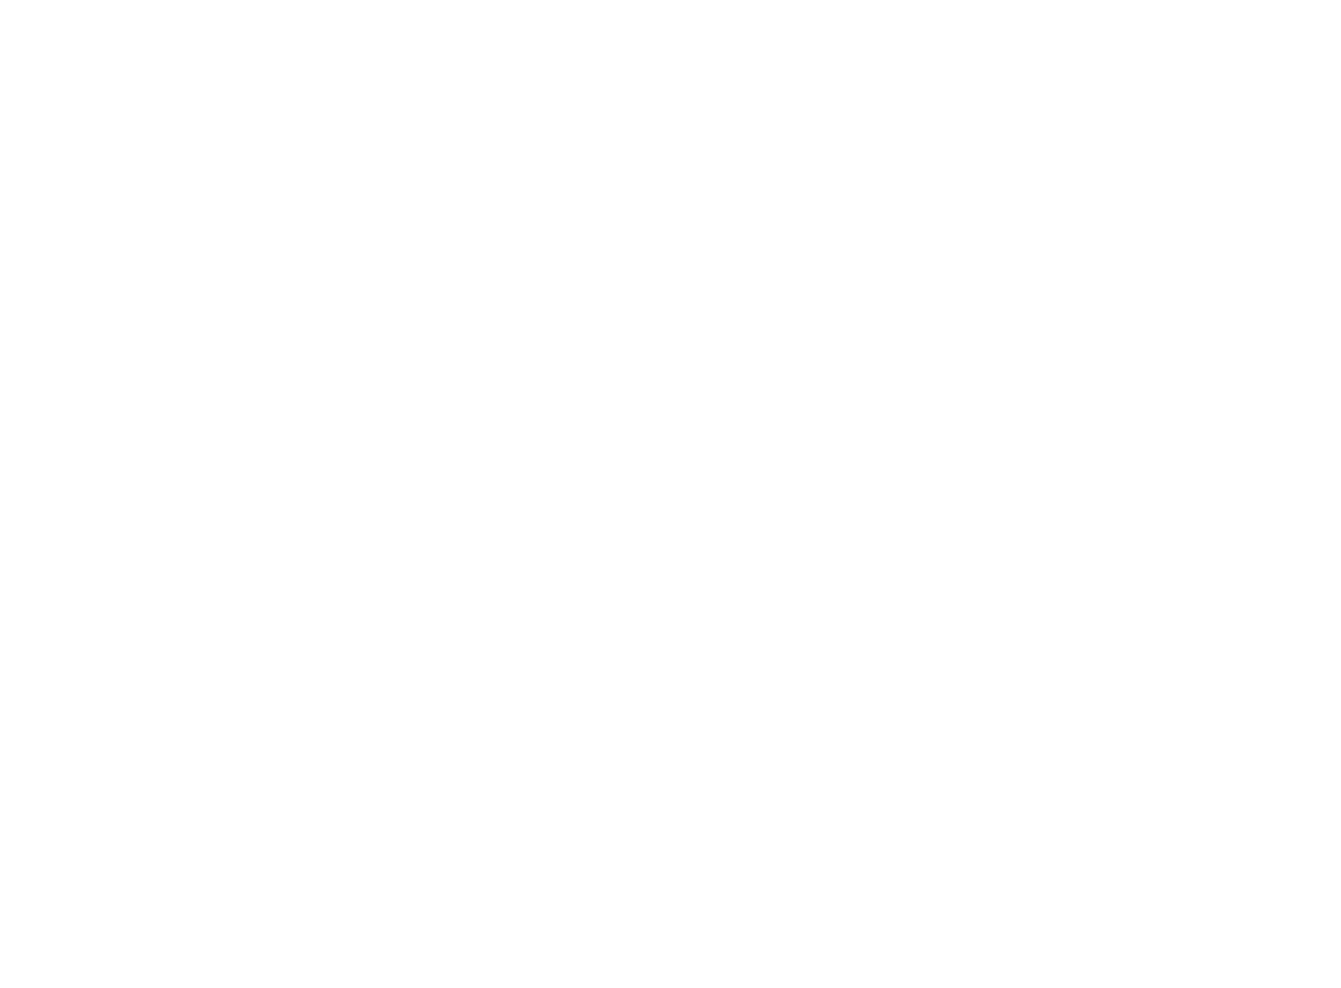 Circular Fashion Summit - powered by Lablaco